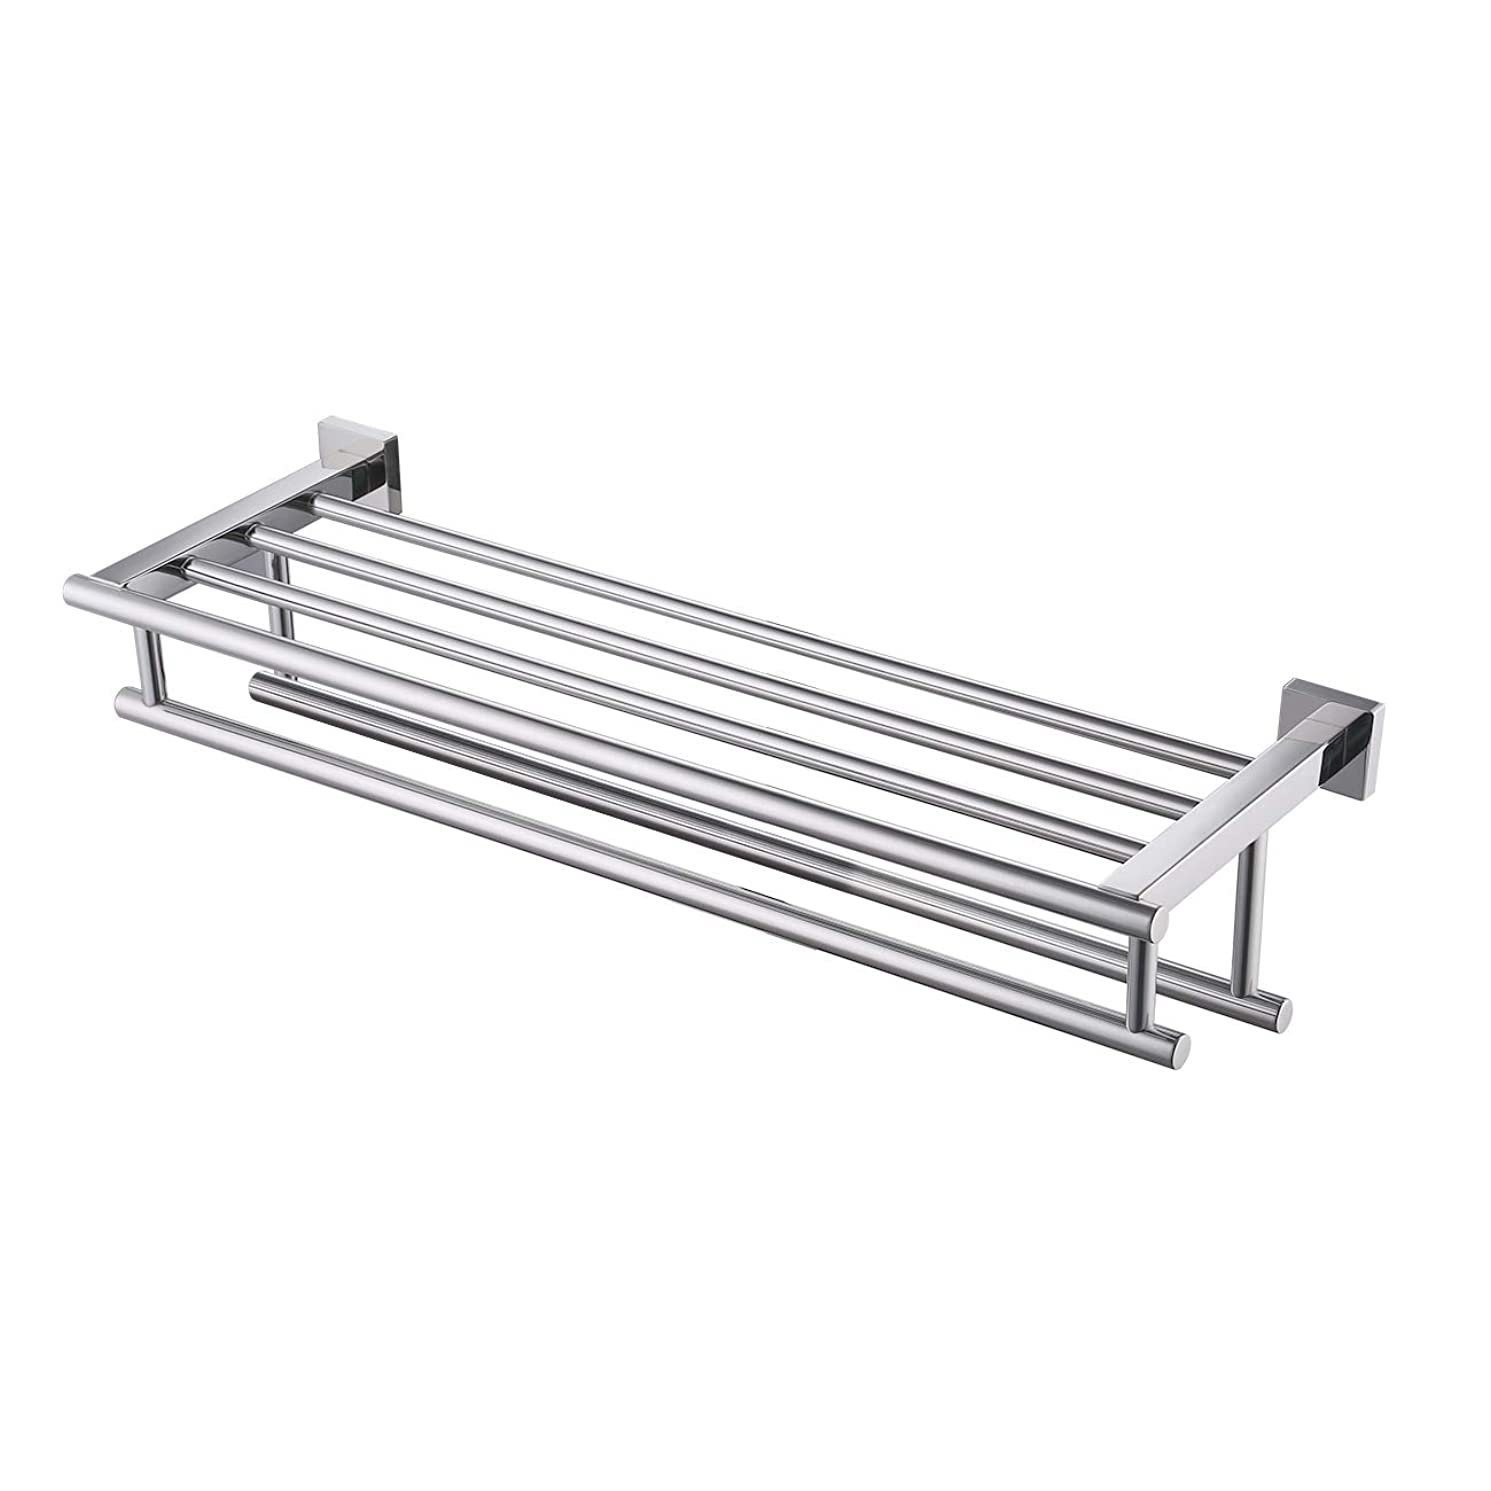 Kes Bathroom Bath Towel Rack with Double Towel Bar 24-Inch Wall Mount Shelf Rustproof Stainless Steel Polished Finish, A2112S60